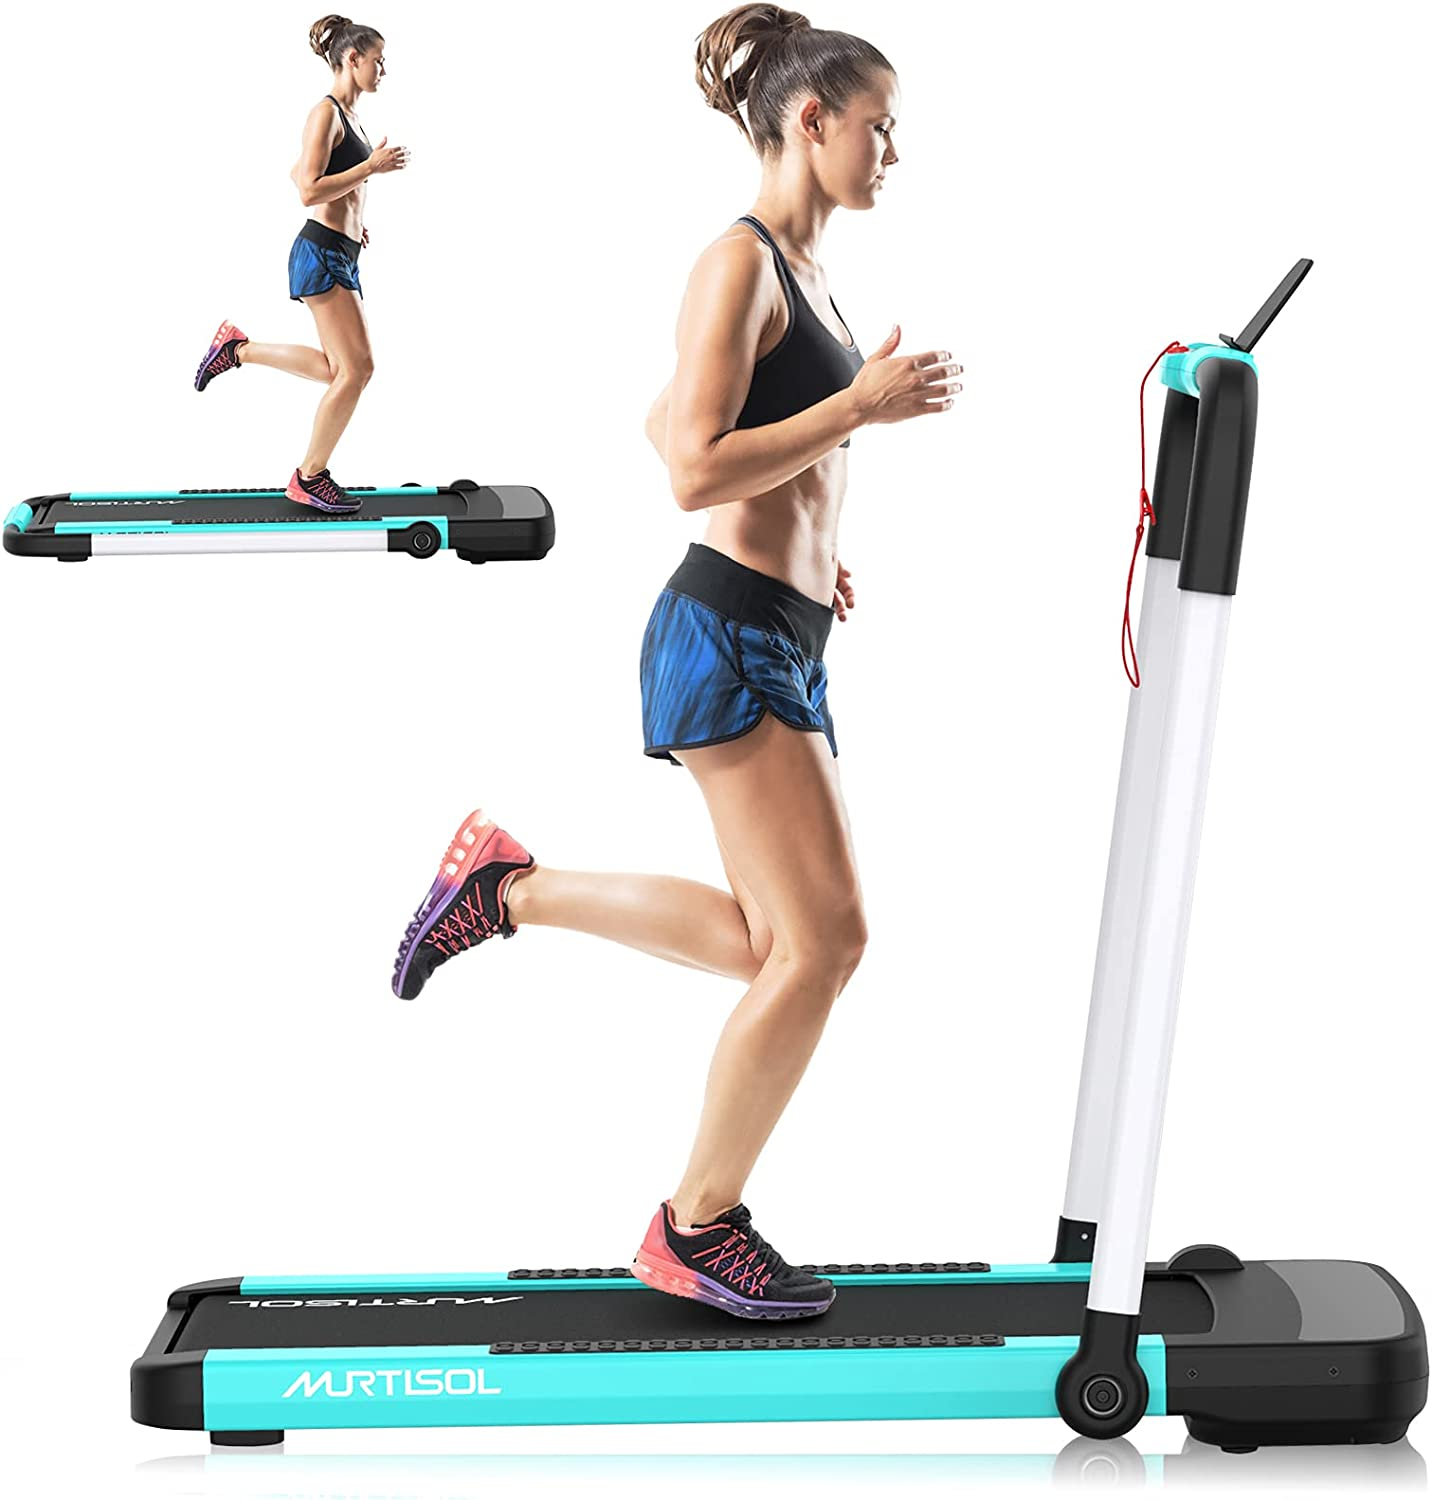 Murtisol Safety and trust 2 Boston Mall in 1 Folding Treadmill Tr Electric 2.25HP Desk Under